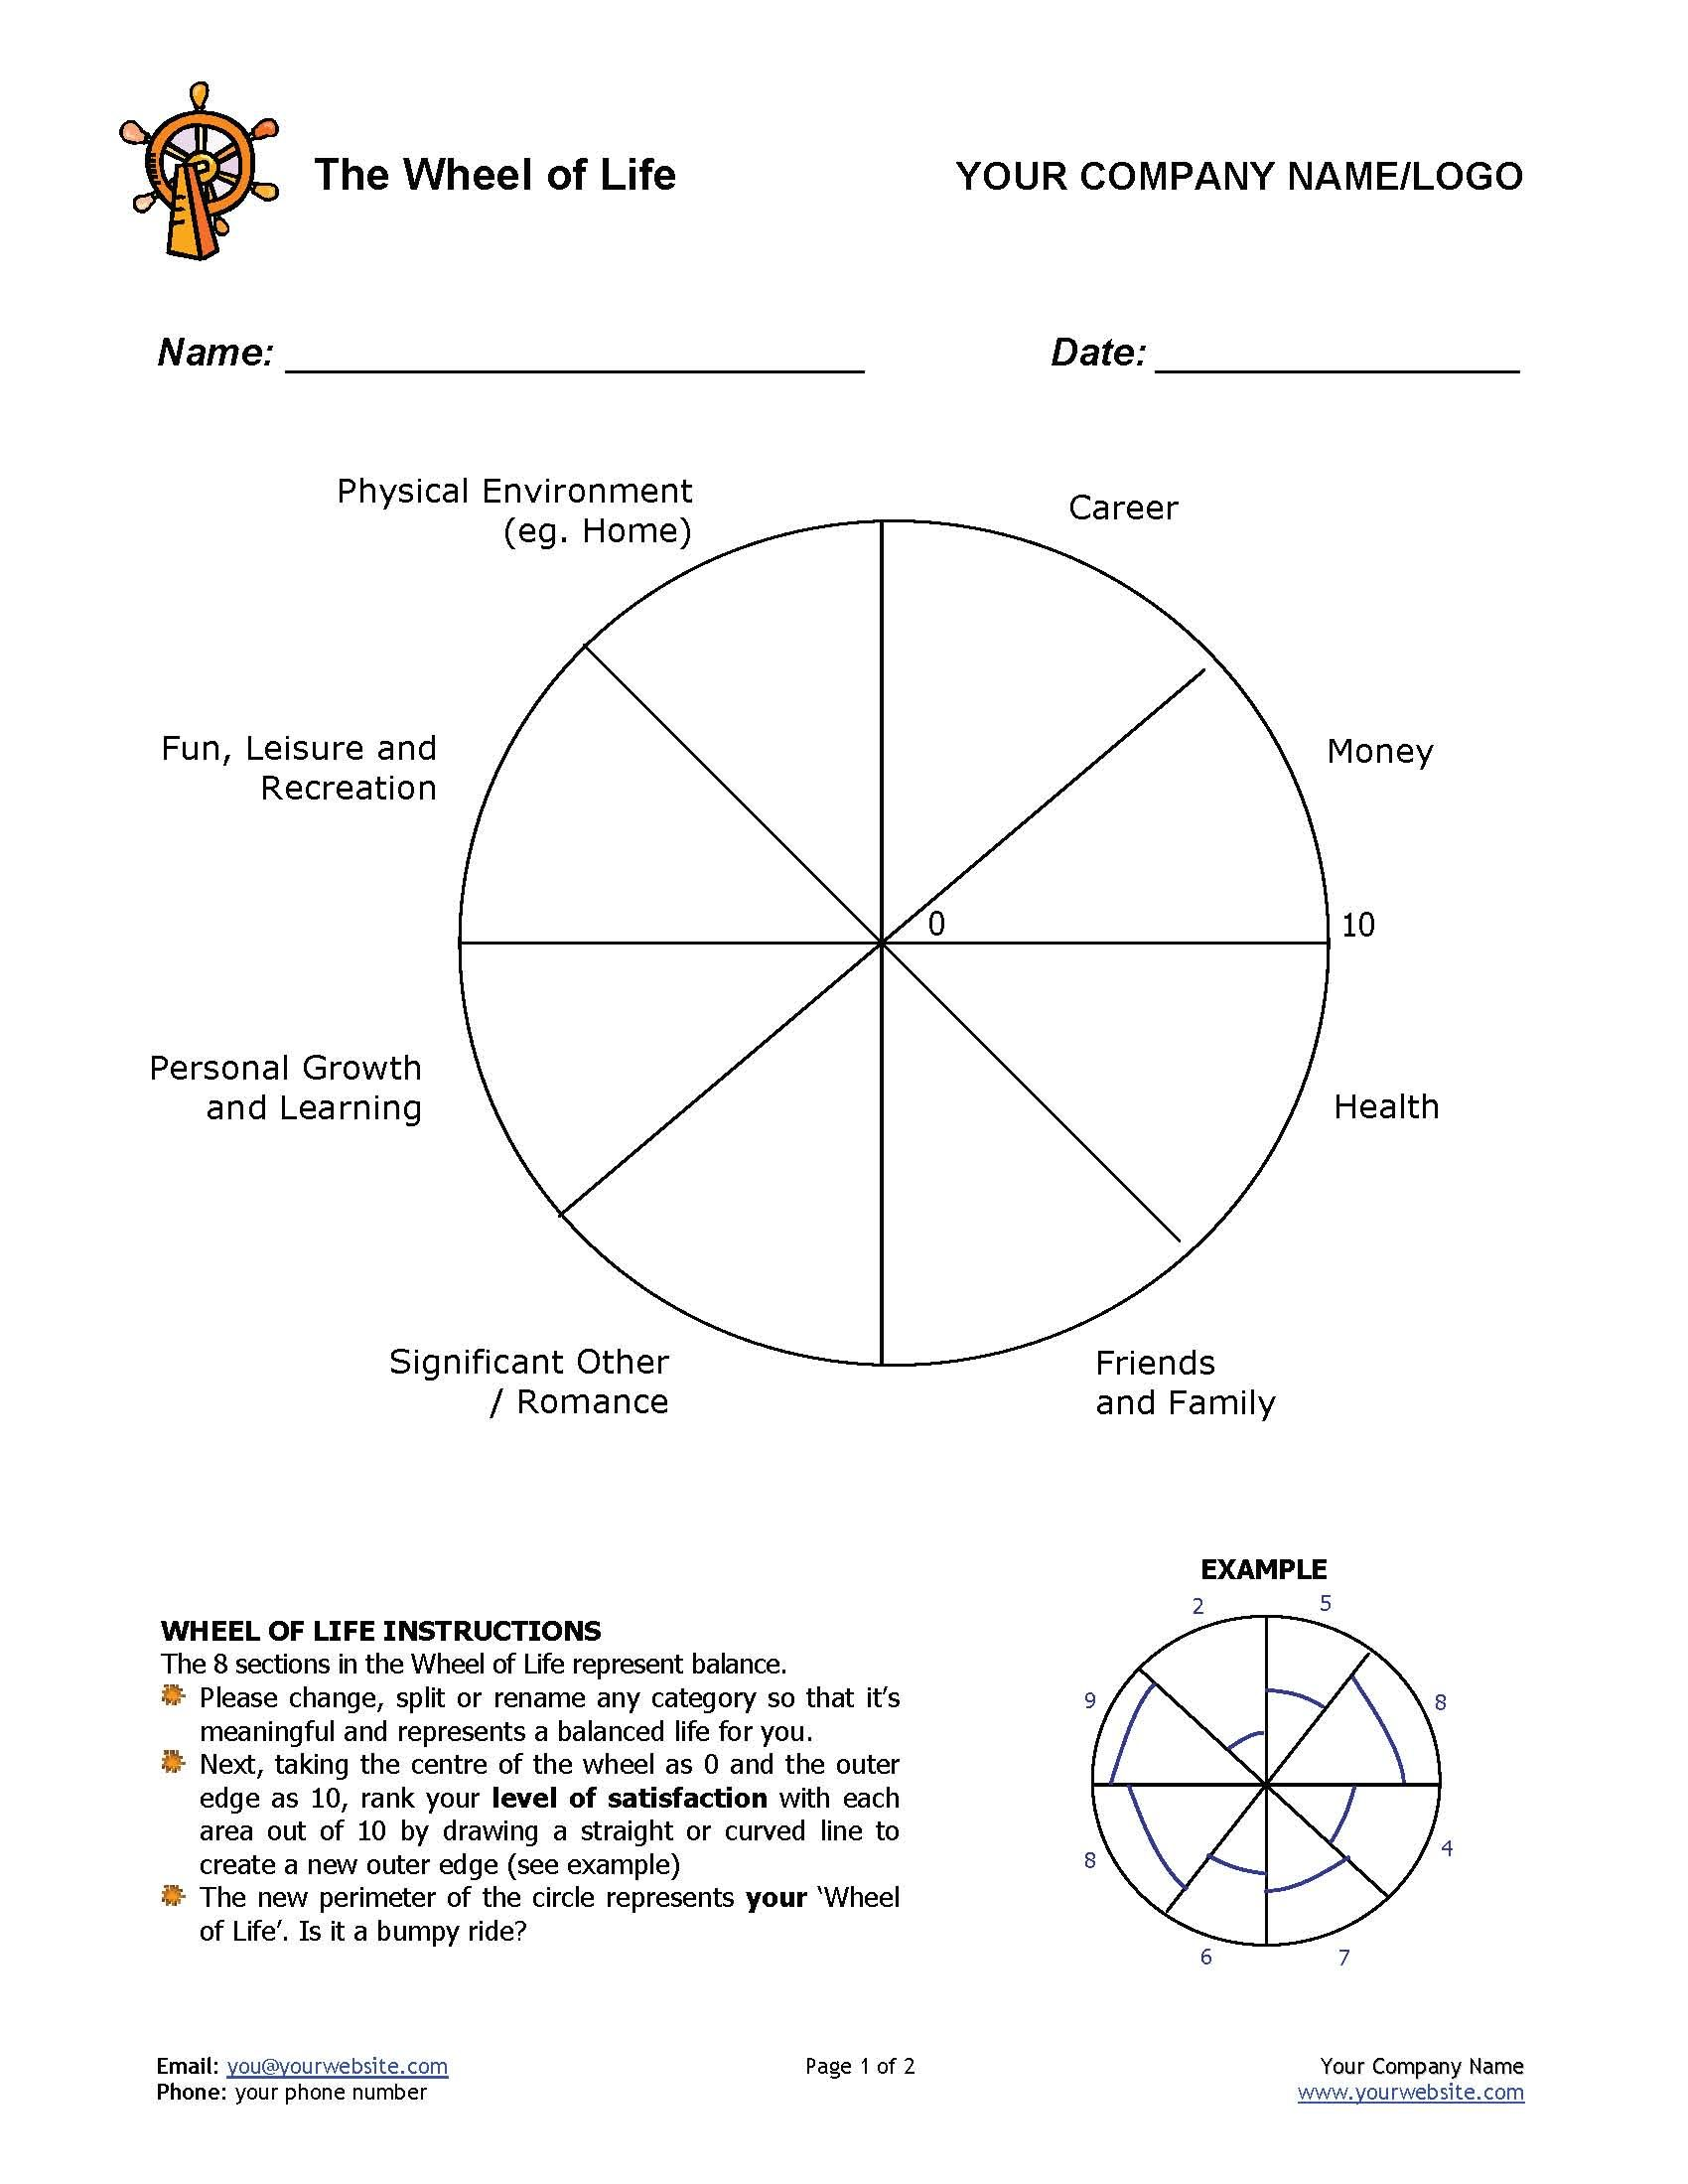 12 Awesome New Ways To Use The Wheel Of Life Tool In Your Coaching